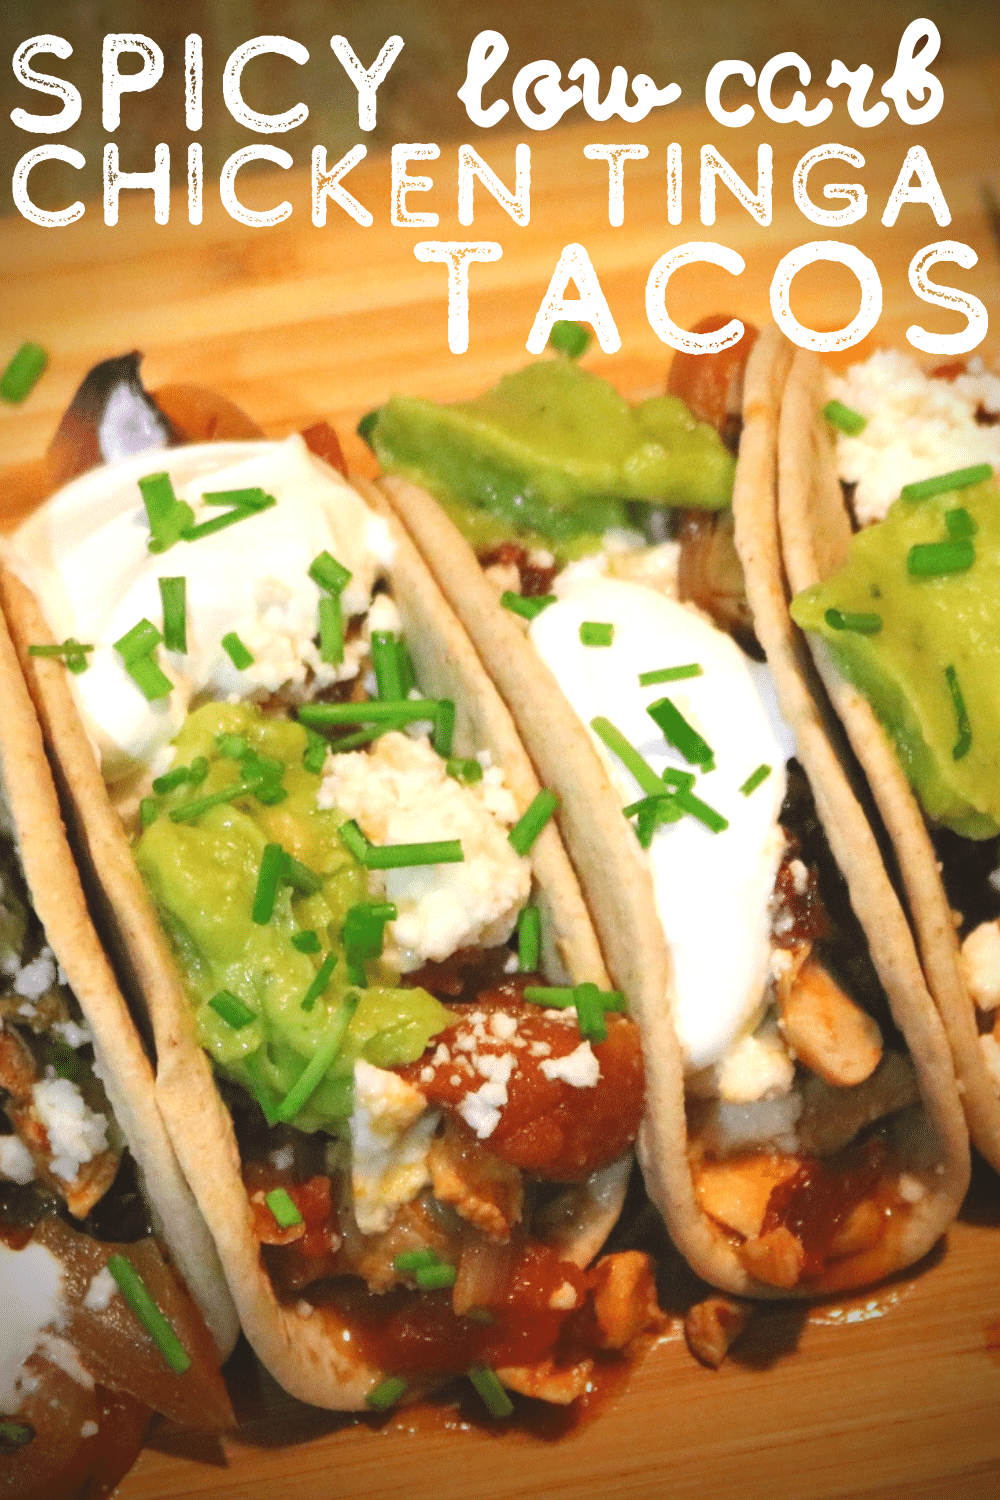 Spicy Chicken Tinga Tacos With Guacamole and Queso Fresco - Low Carb 2